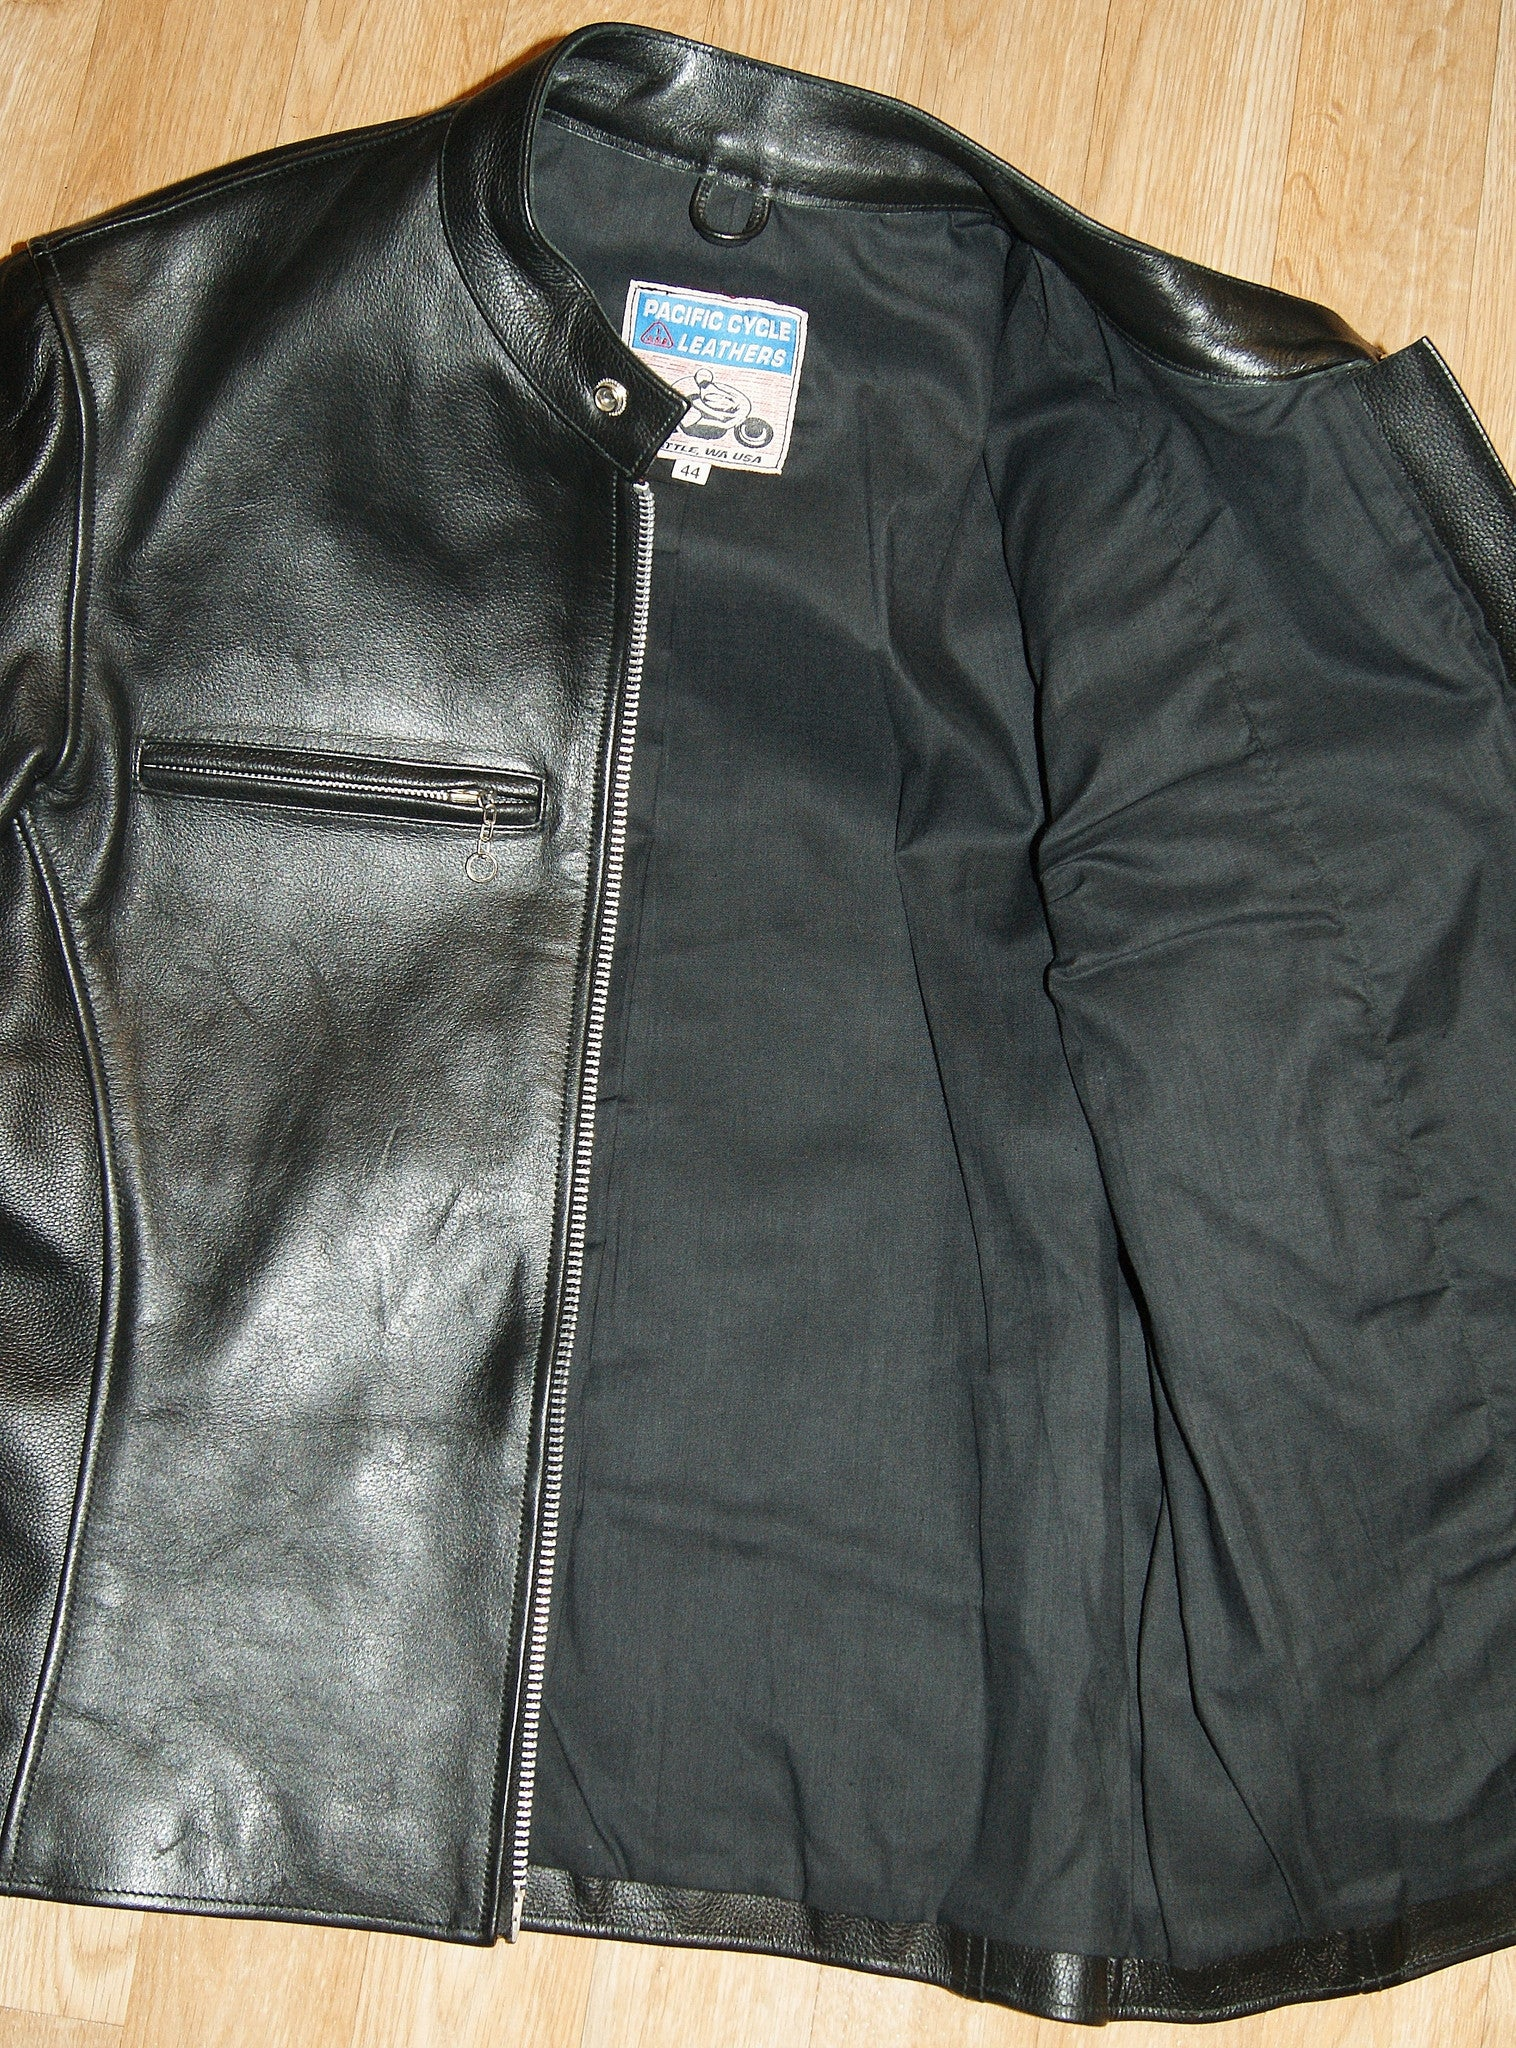 Pacific Cycle Two-Pocket, size 44, Black Cowhide